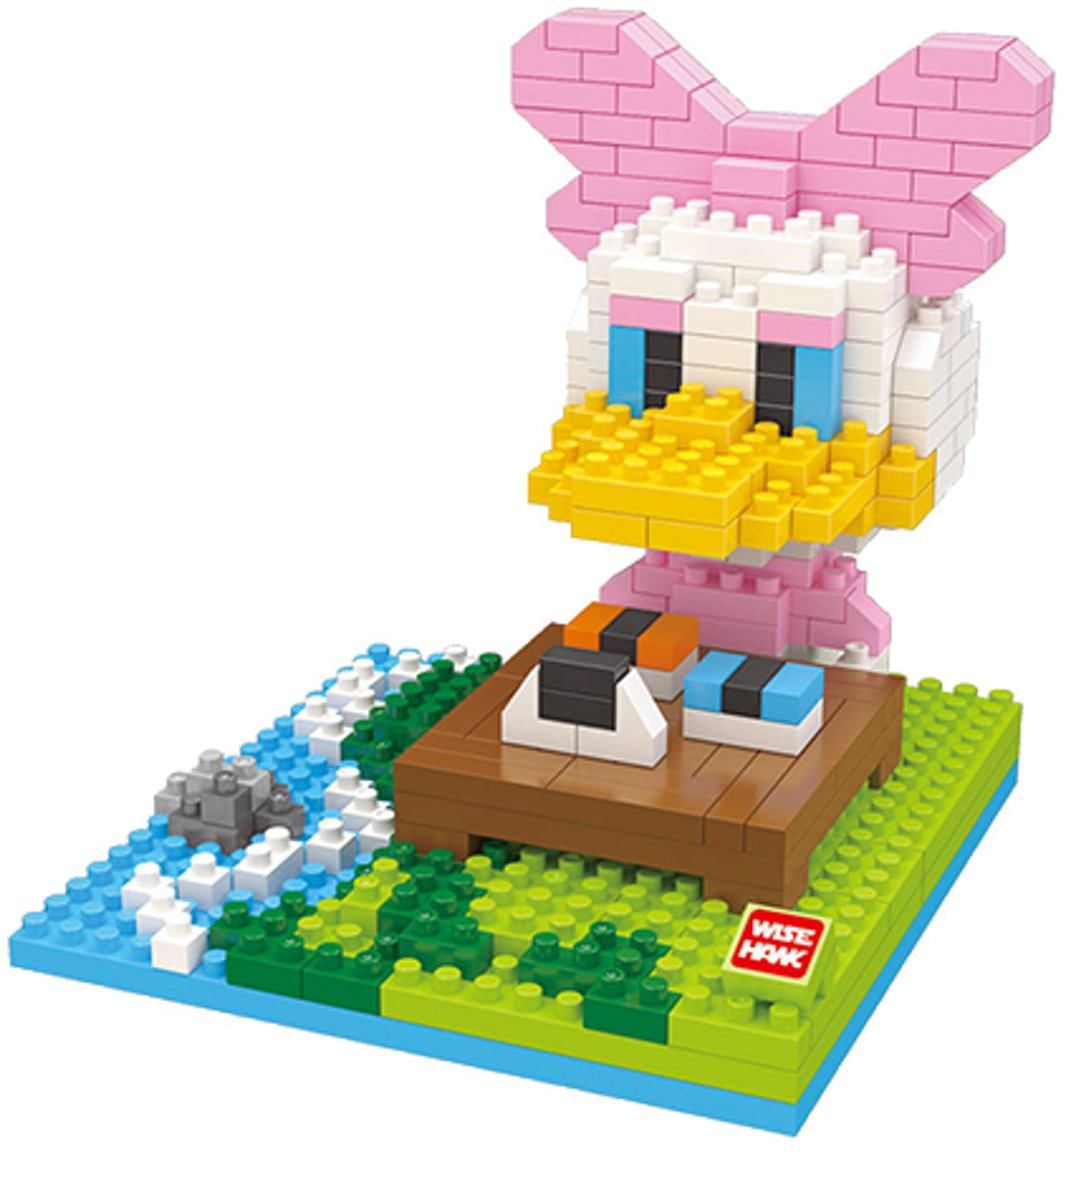 Nanoblocks Katrien Duck in het park - Wise hawk